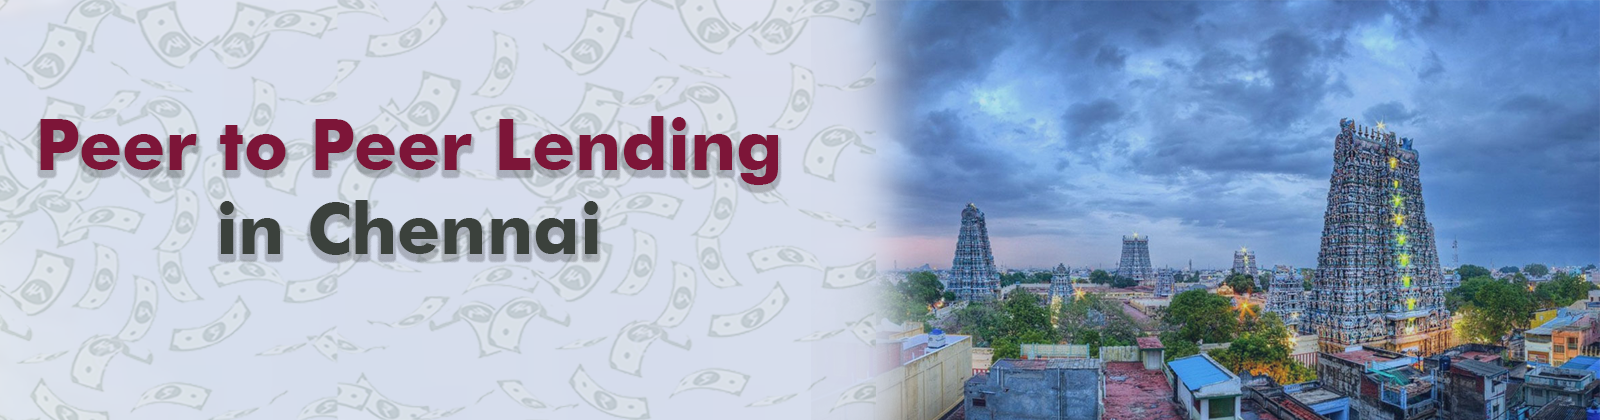 Peer to Peer Lending in Chennai